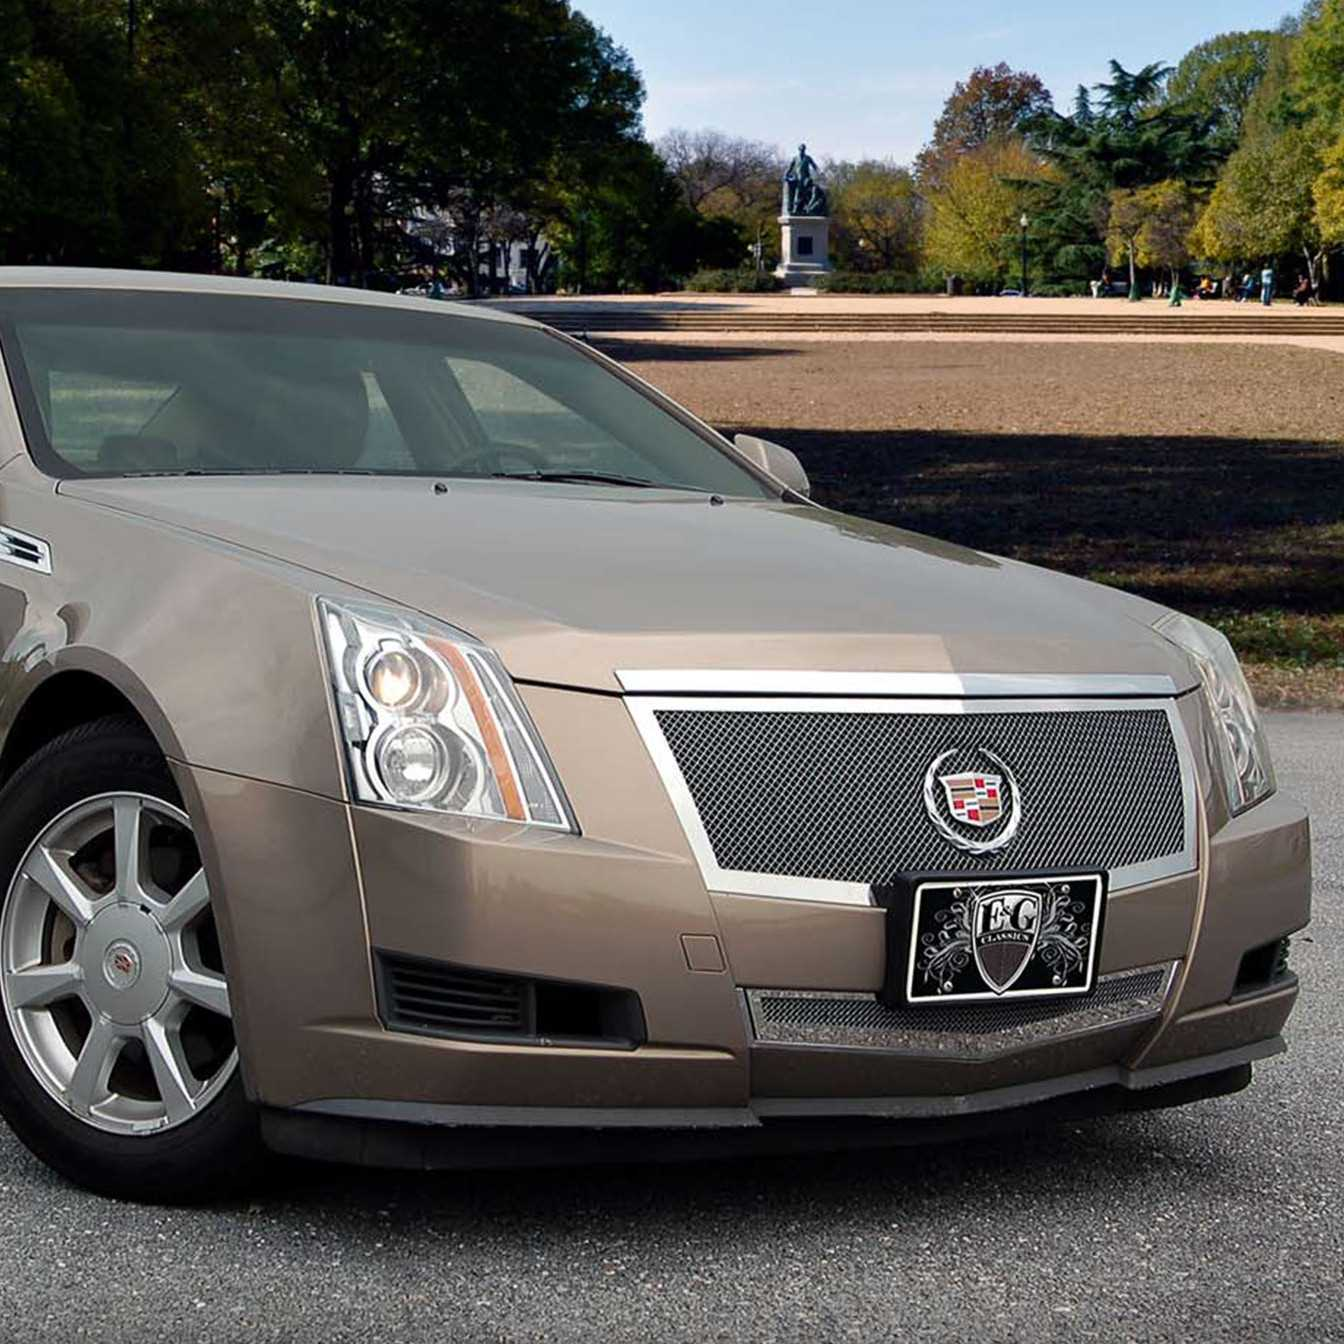 Cadillac Cts 2013 Price: E&G Classics 2012-2013 Cadillac CTS Grille 2Pc Black Ice Fine Mesh Grille